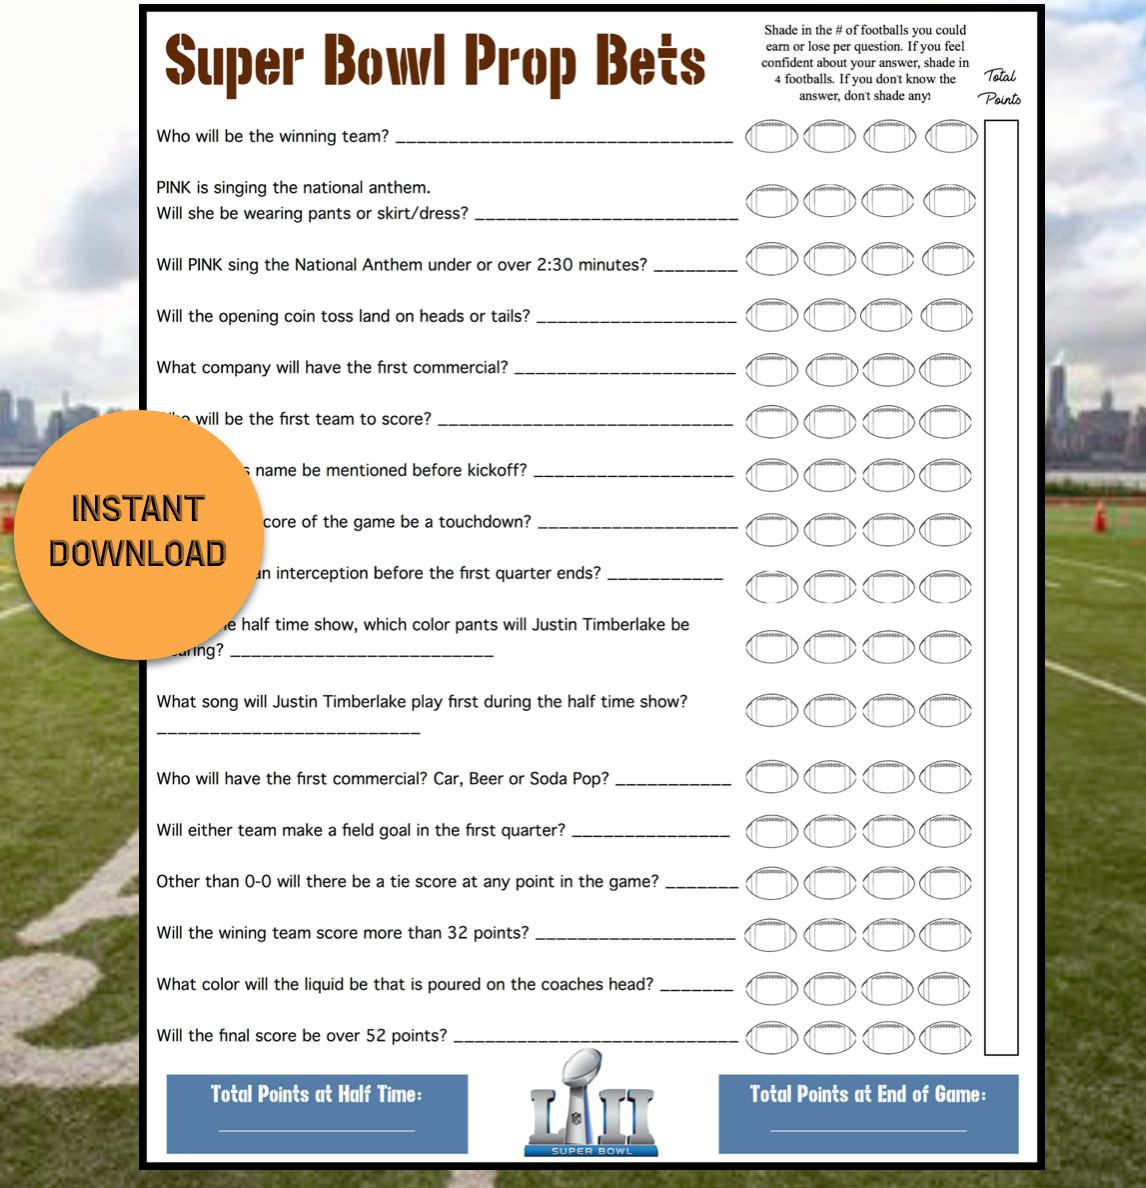 where to bet on super bowl